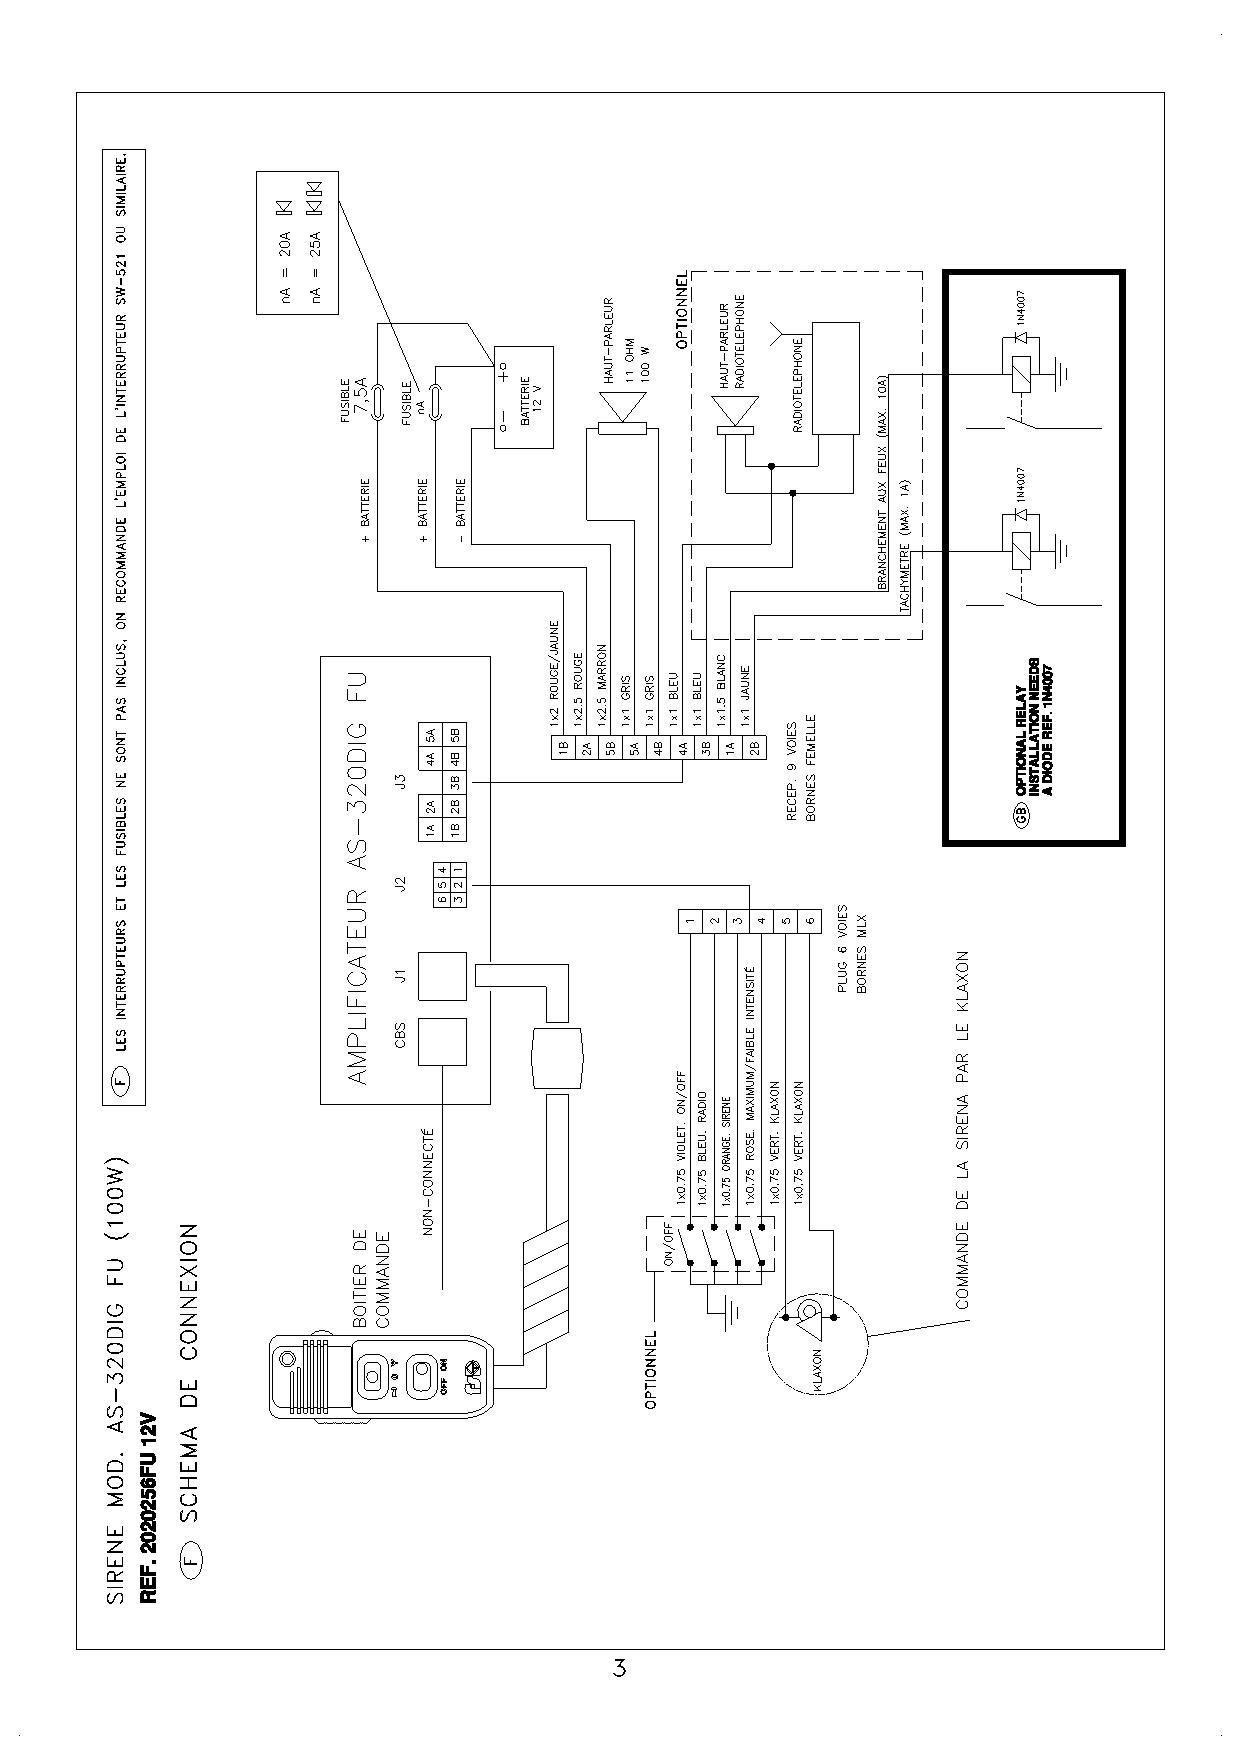 Federal Signal Light Bar | Wiring Diagram Database on series and parallel circuits diagrams, honda motorcycle repair diagrams, motor diagrams, gmc fuse box diagrams, troubleshooting diagrams, pinout diagrams, friendship bracelet diagrams, switch diagrams, lighting diagrams, electronic circuit diagrams, electrical diagrams, hvac diagrams, transformer diagrams, smart car diagrams, battery diagrams, internet of things diagrams, led circuit diagrams, sincgars radio configurations diagrams, engine diagrams,